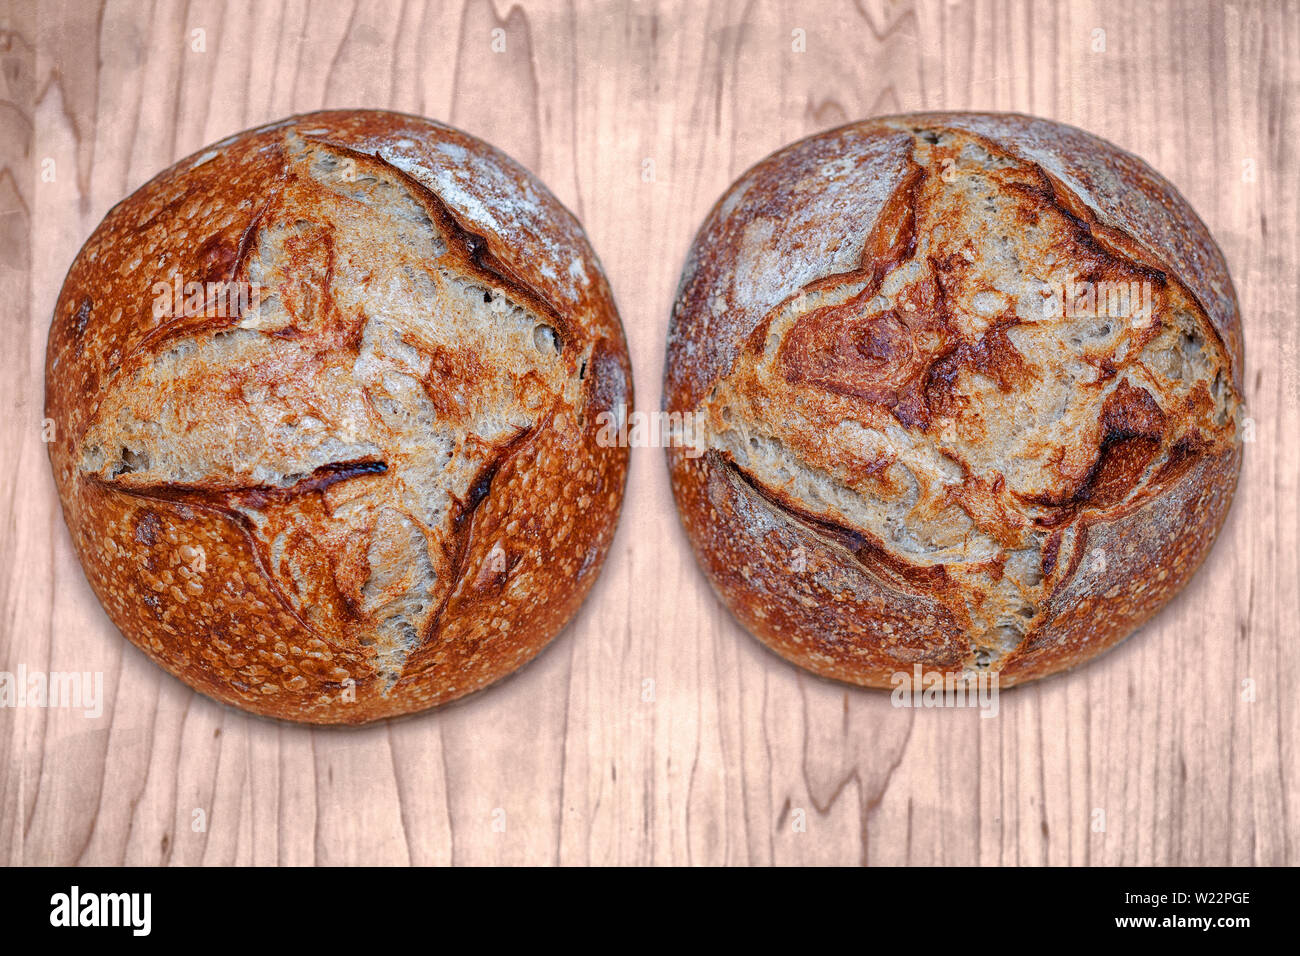 Pair of two baked Artisan loaf of traditional Homemade sourdough Boule bread loafs with crust on a wooden board Stock Photo